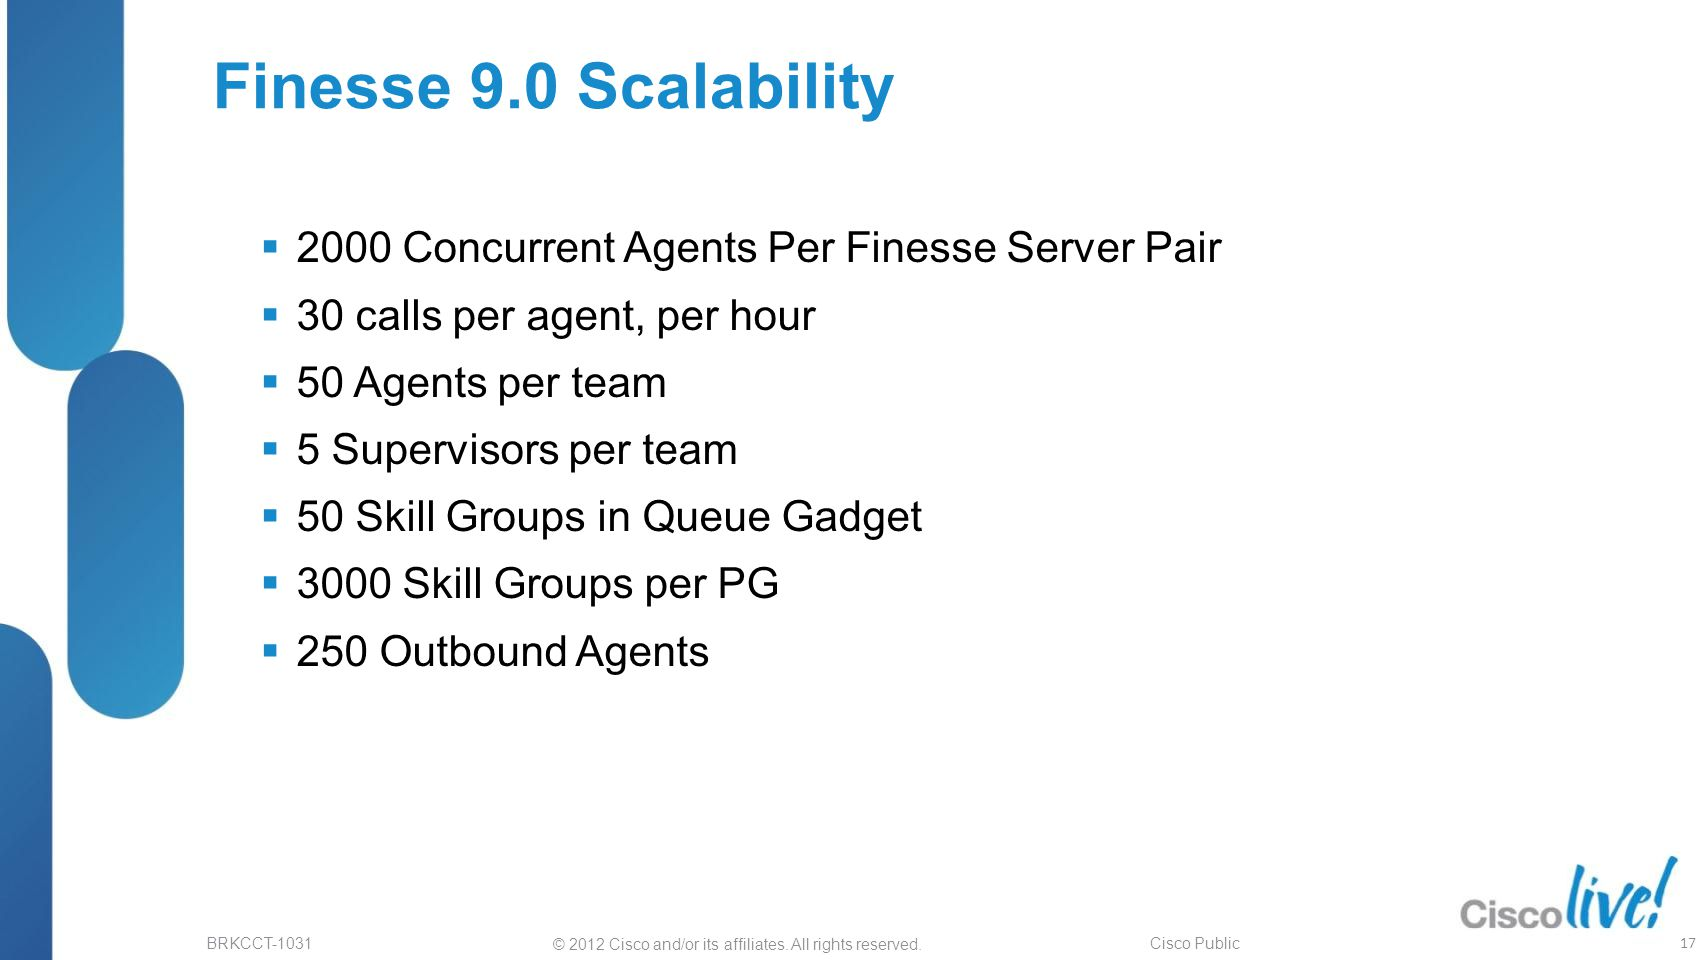 Finesse 9.0 Scalability 2000 Concurrent Agents Per Finesse Server Pair